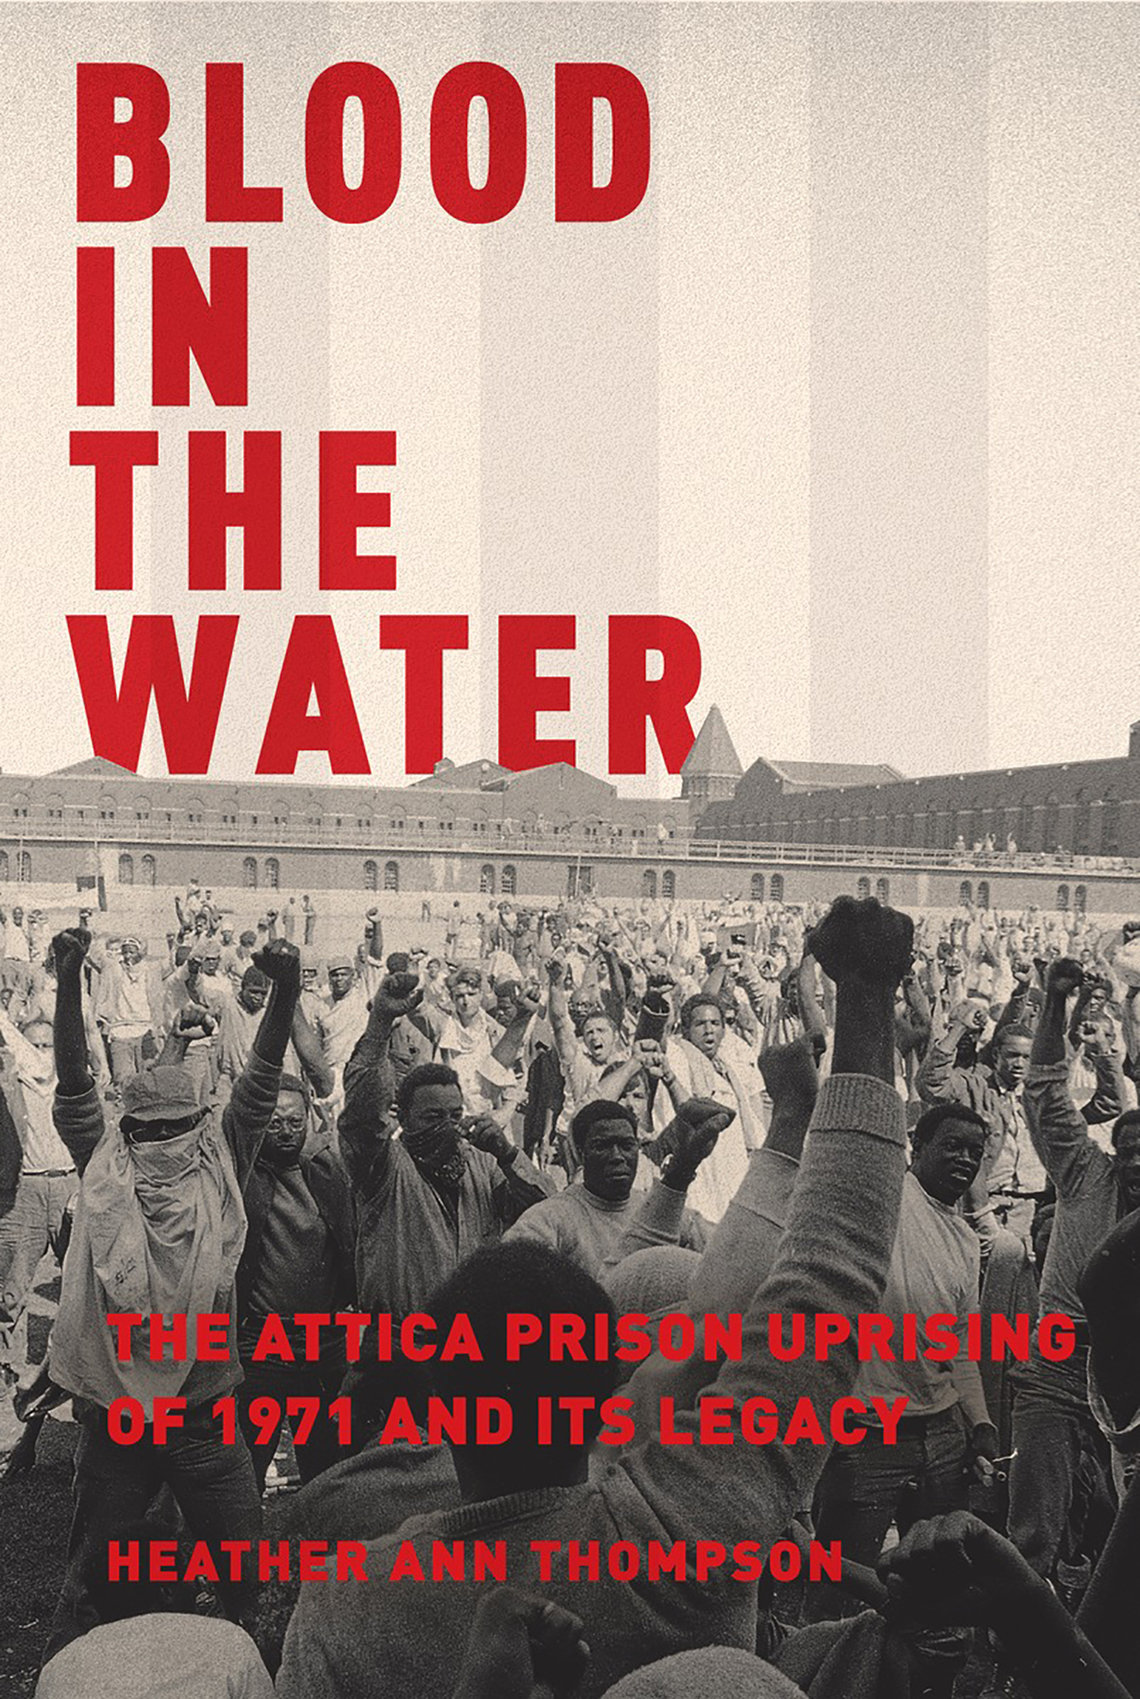 """""""Blood in the Water: The Attica Prison Uprising of 1971 and Its Legacy,"""" Heather Ann Thompson, Pantheon Books 2016"""